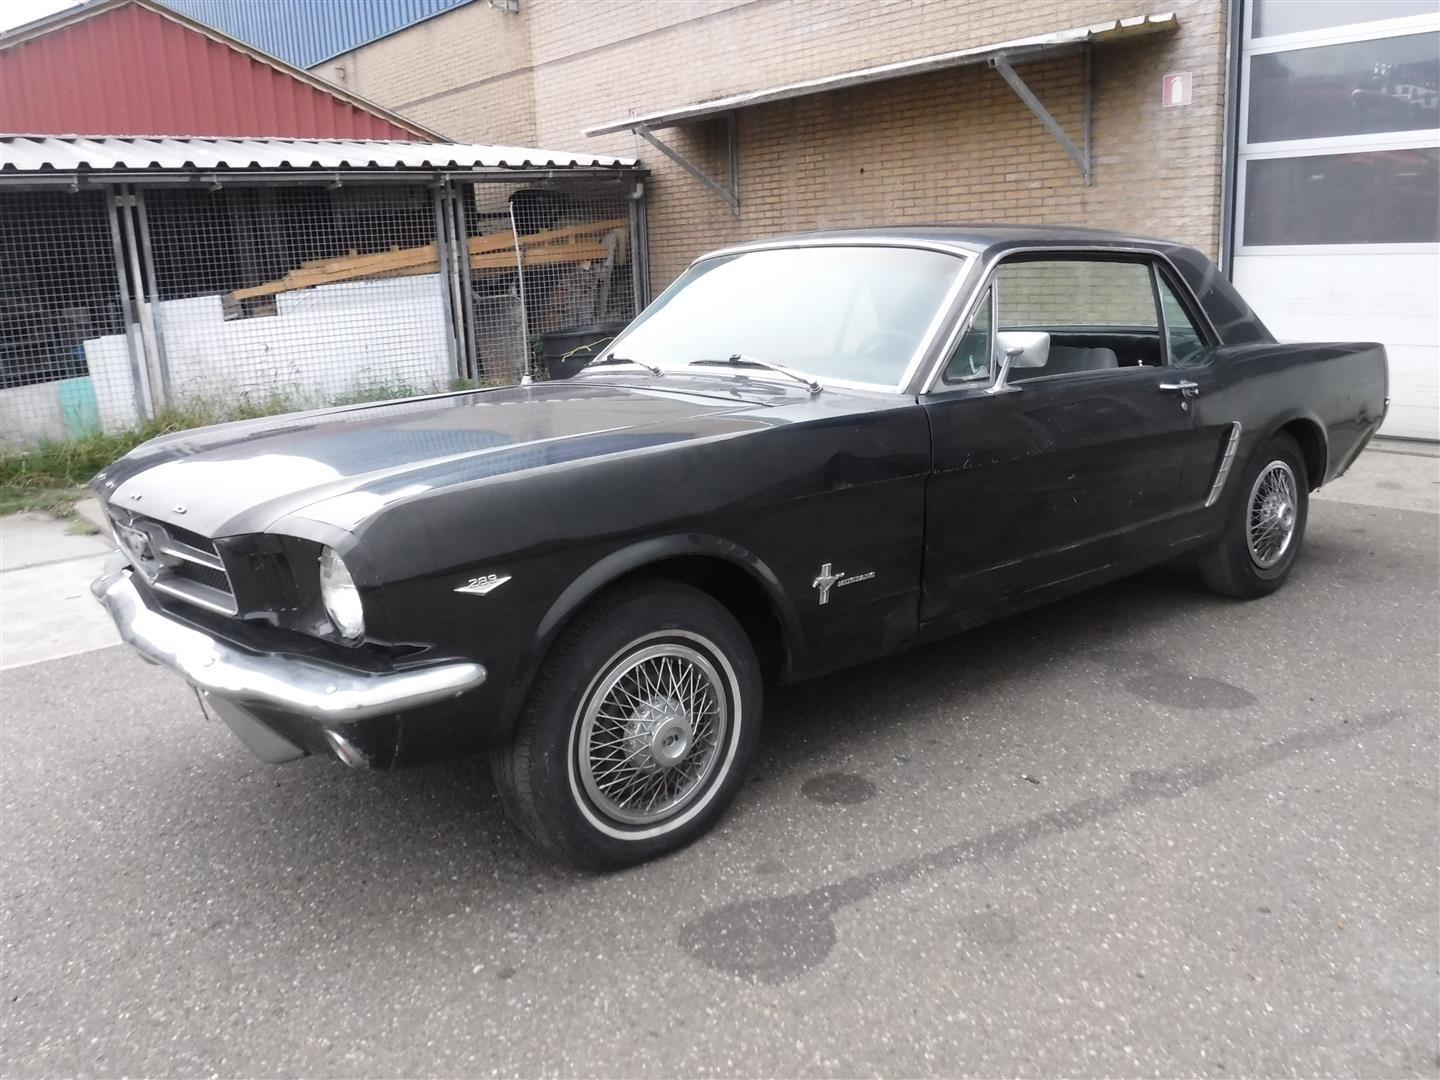 1965 Ford Mustang '65 For Sale (picture 1 of 6)